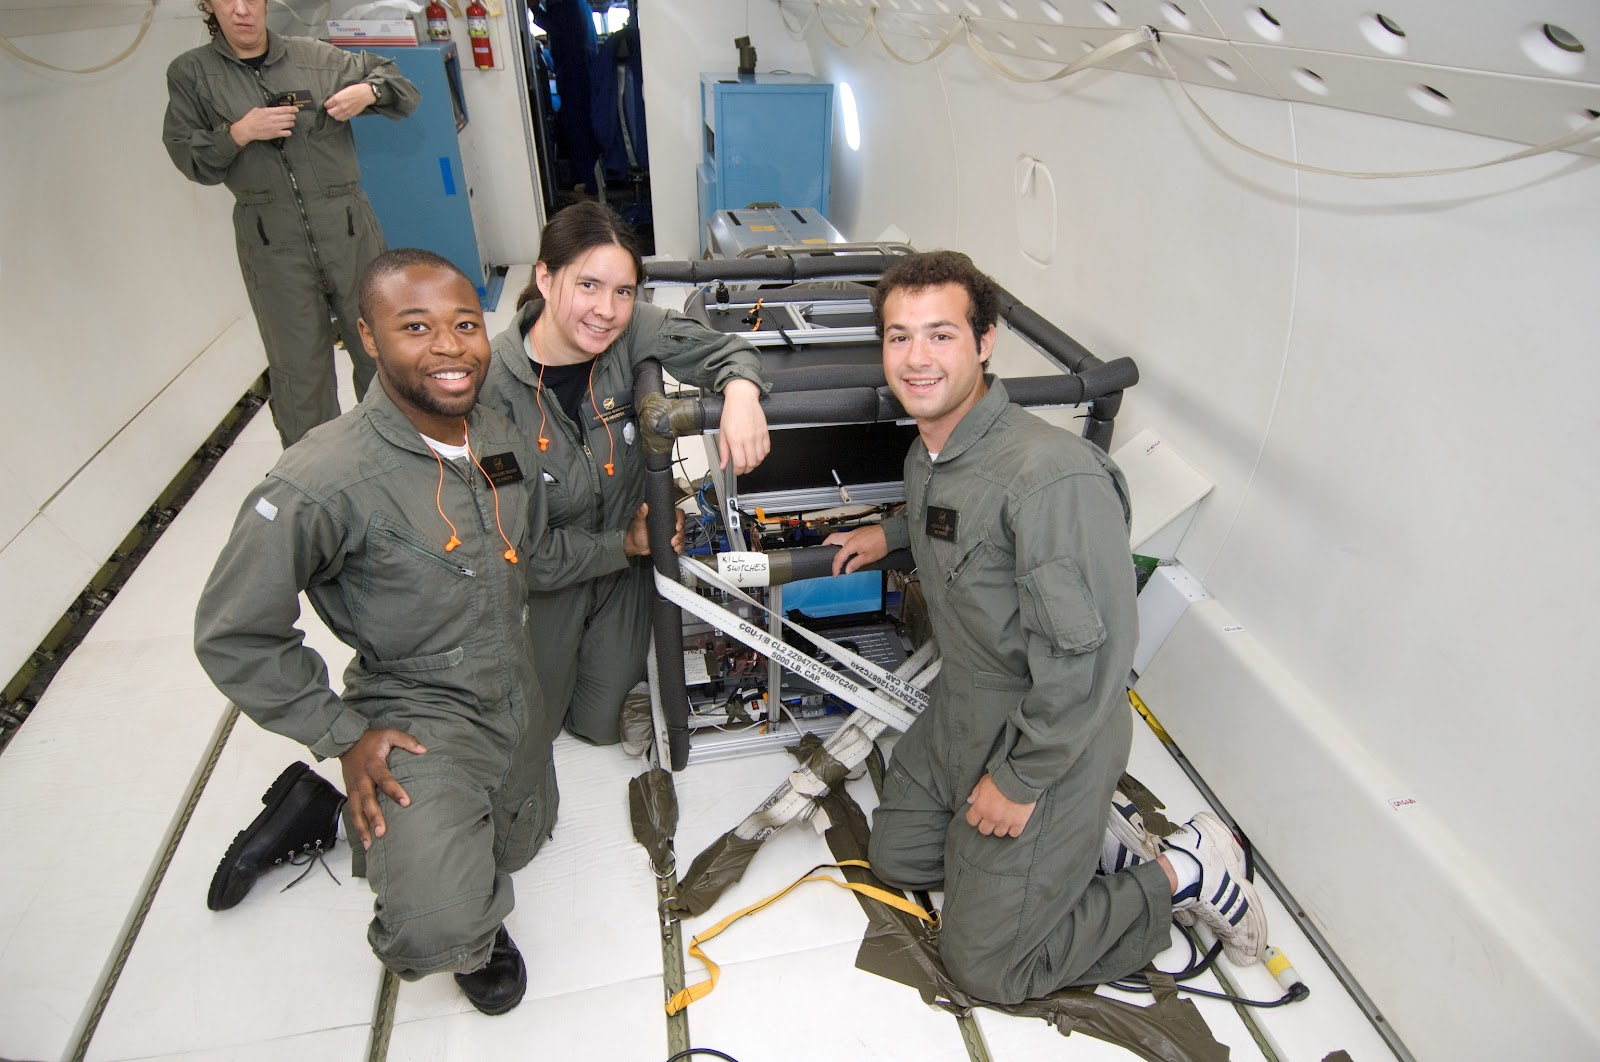 Three people in flight suits inside a white empty airplane cabin with their experiment.